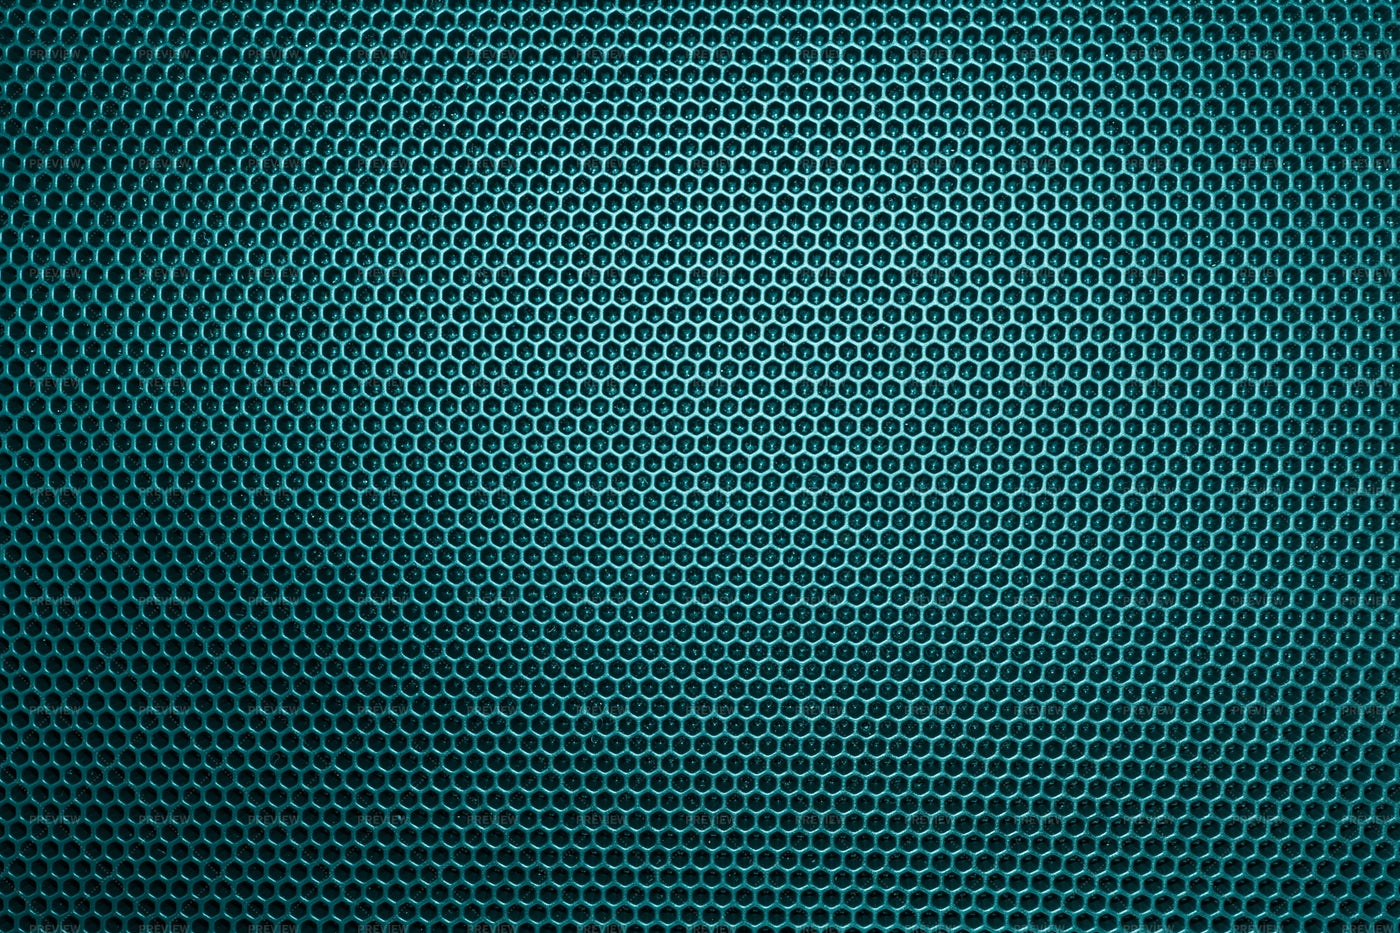 Turquoise Metal Grill: Stock Photos